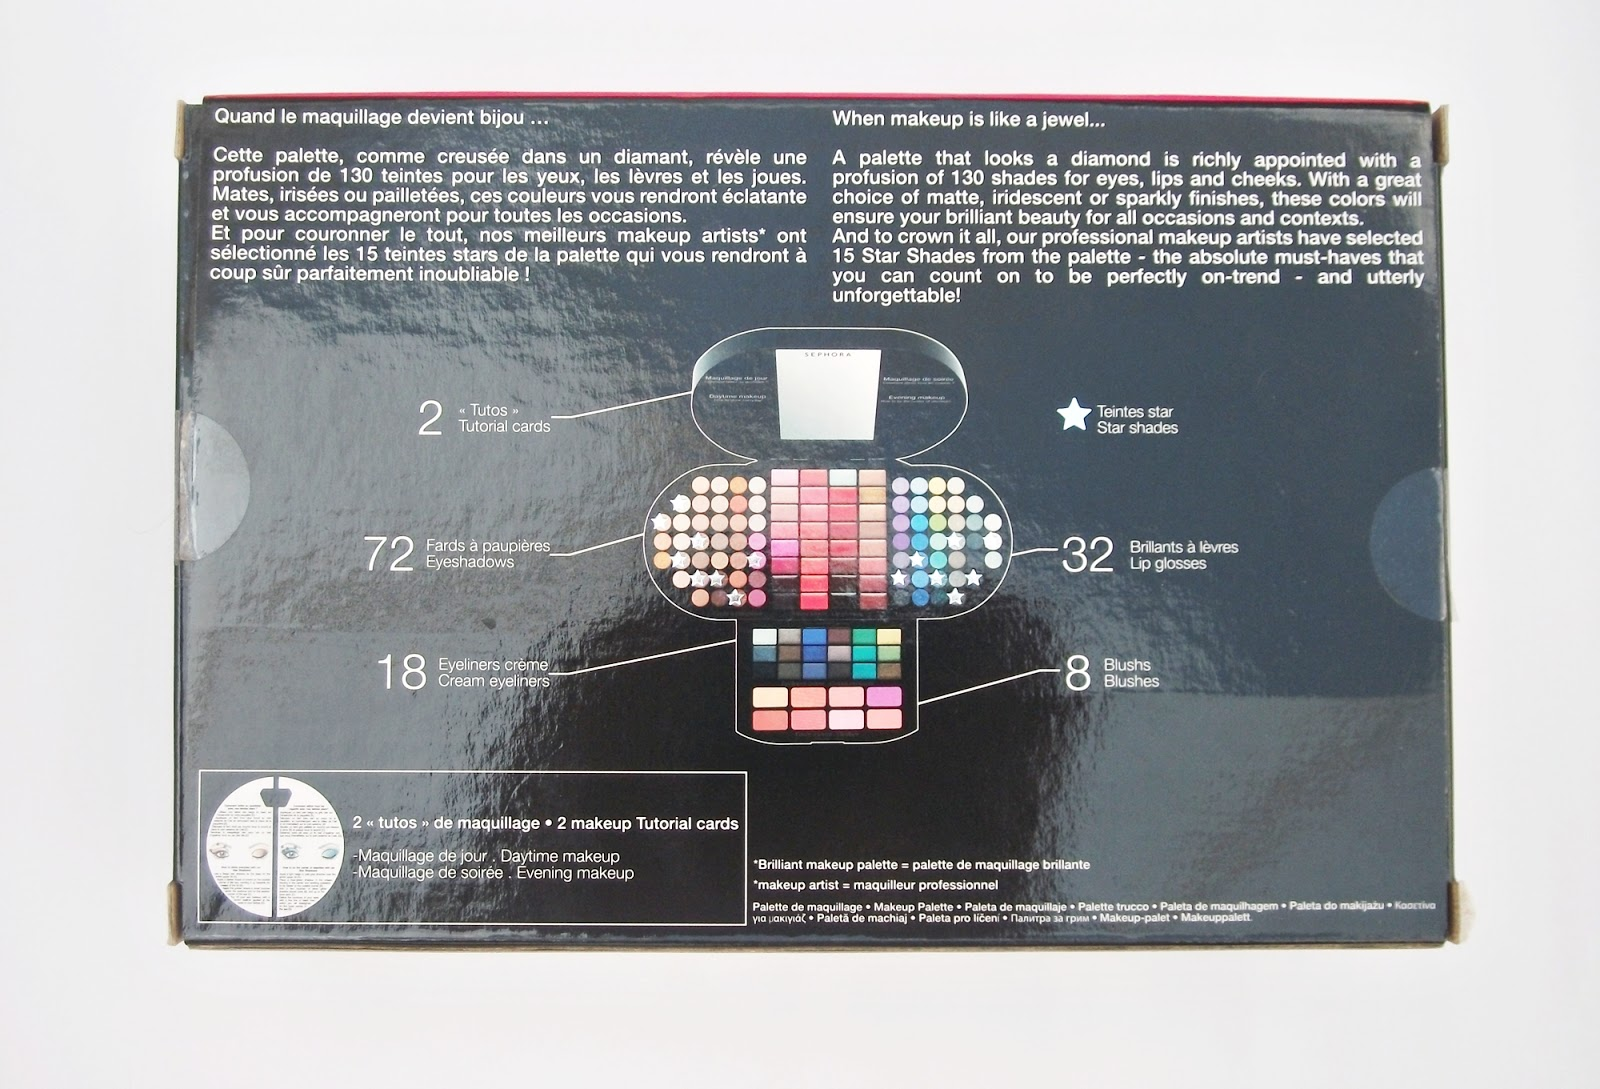 Brilliant Makeup Palette da Sephora